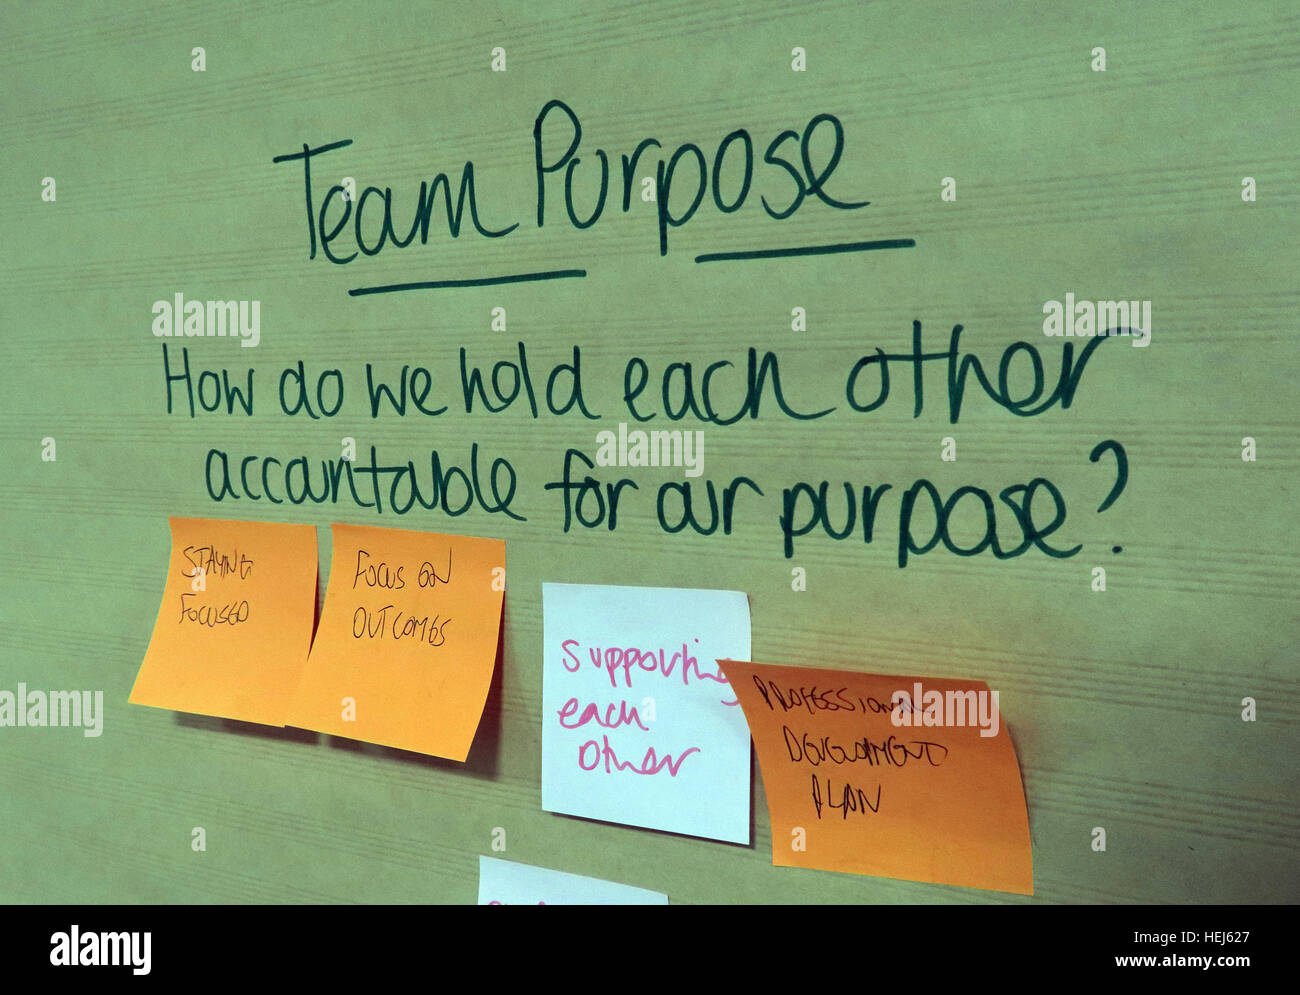 Strategy and Values brainstorming office training team building session - Stock Image